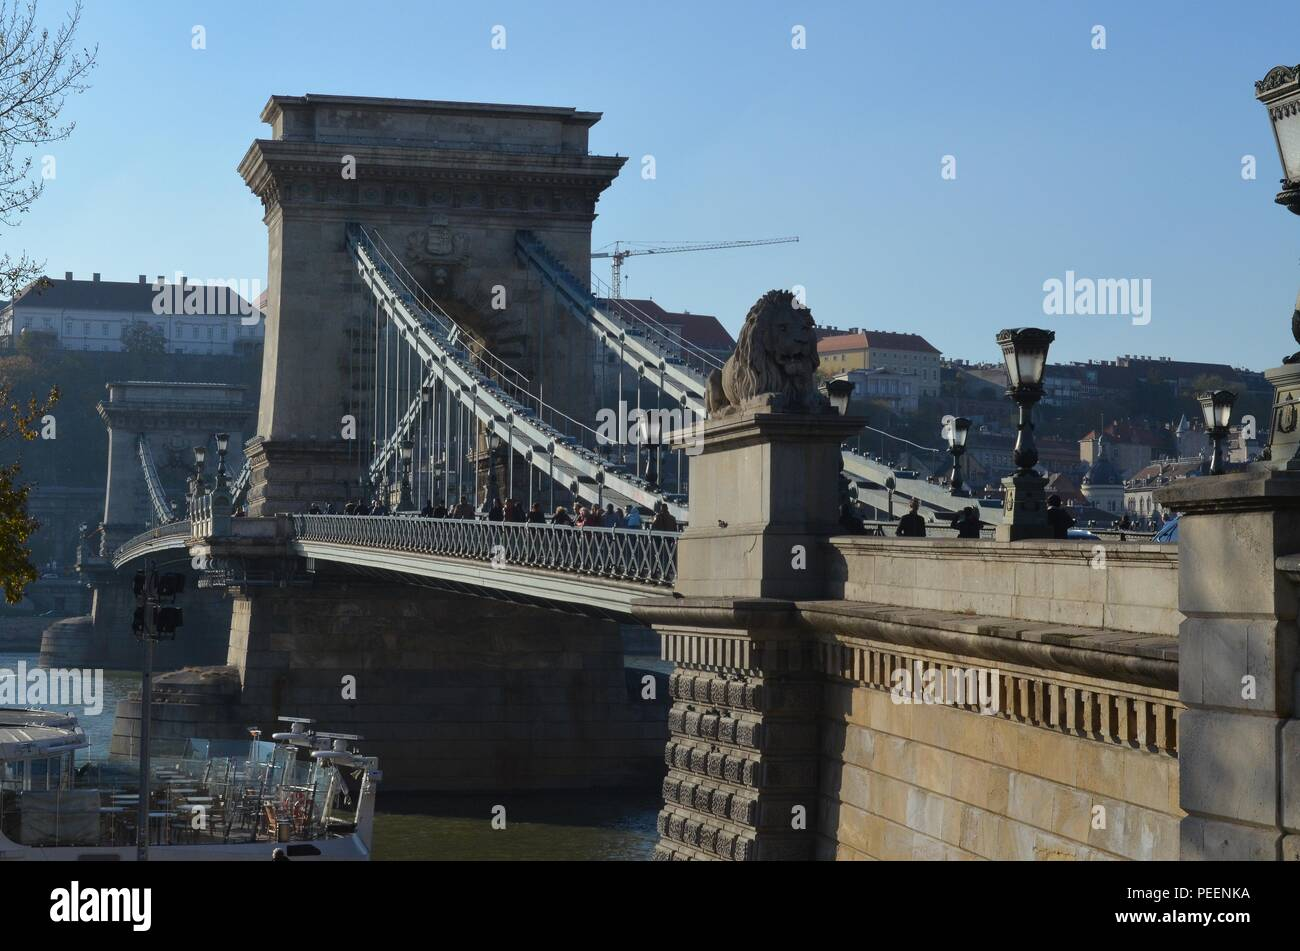 Chain Bridge in Budapest, Hungary, built in 1849 - one of the largest suspension bridges of its time, designed by William Tierney Clark - Stock Image